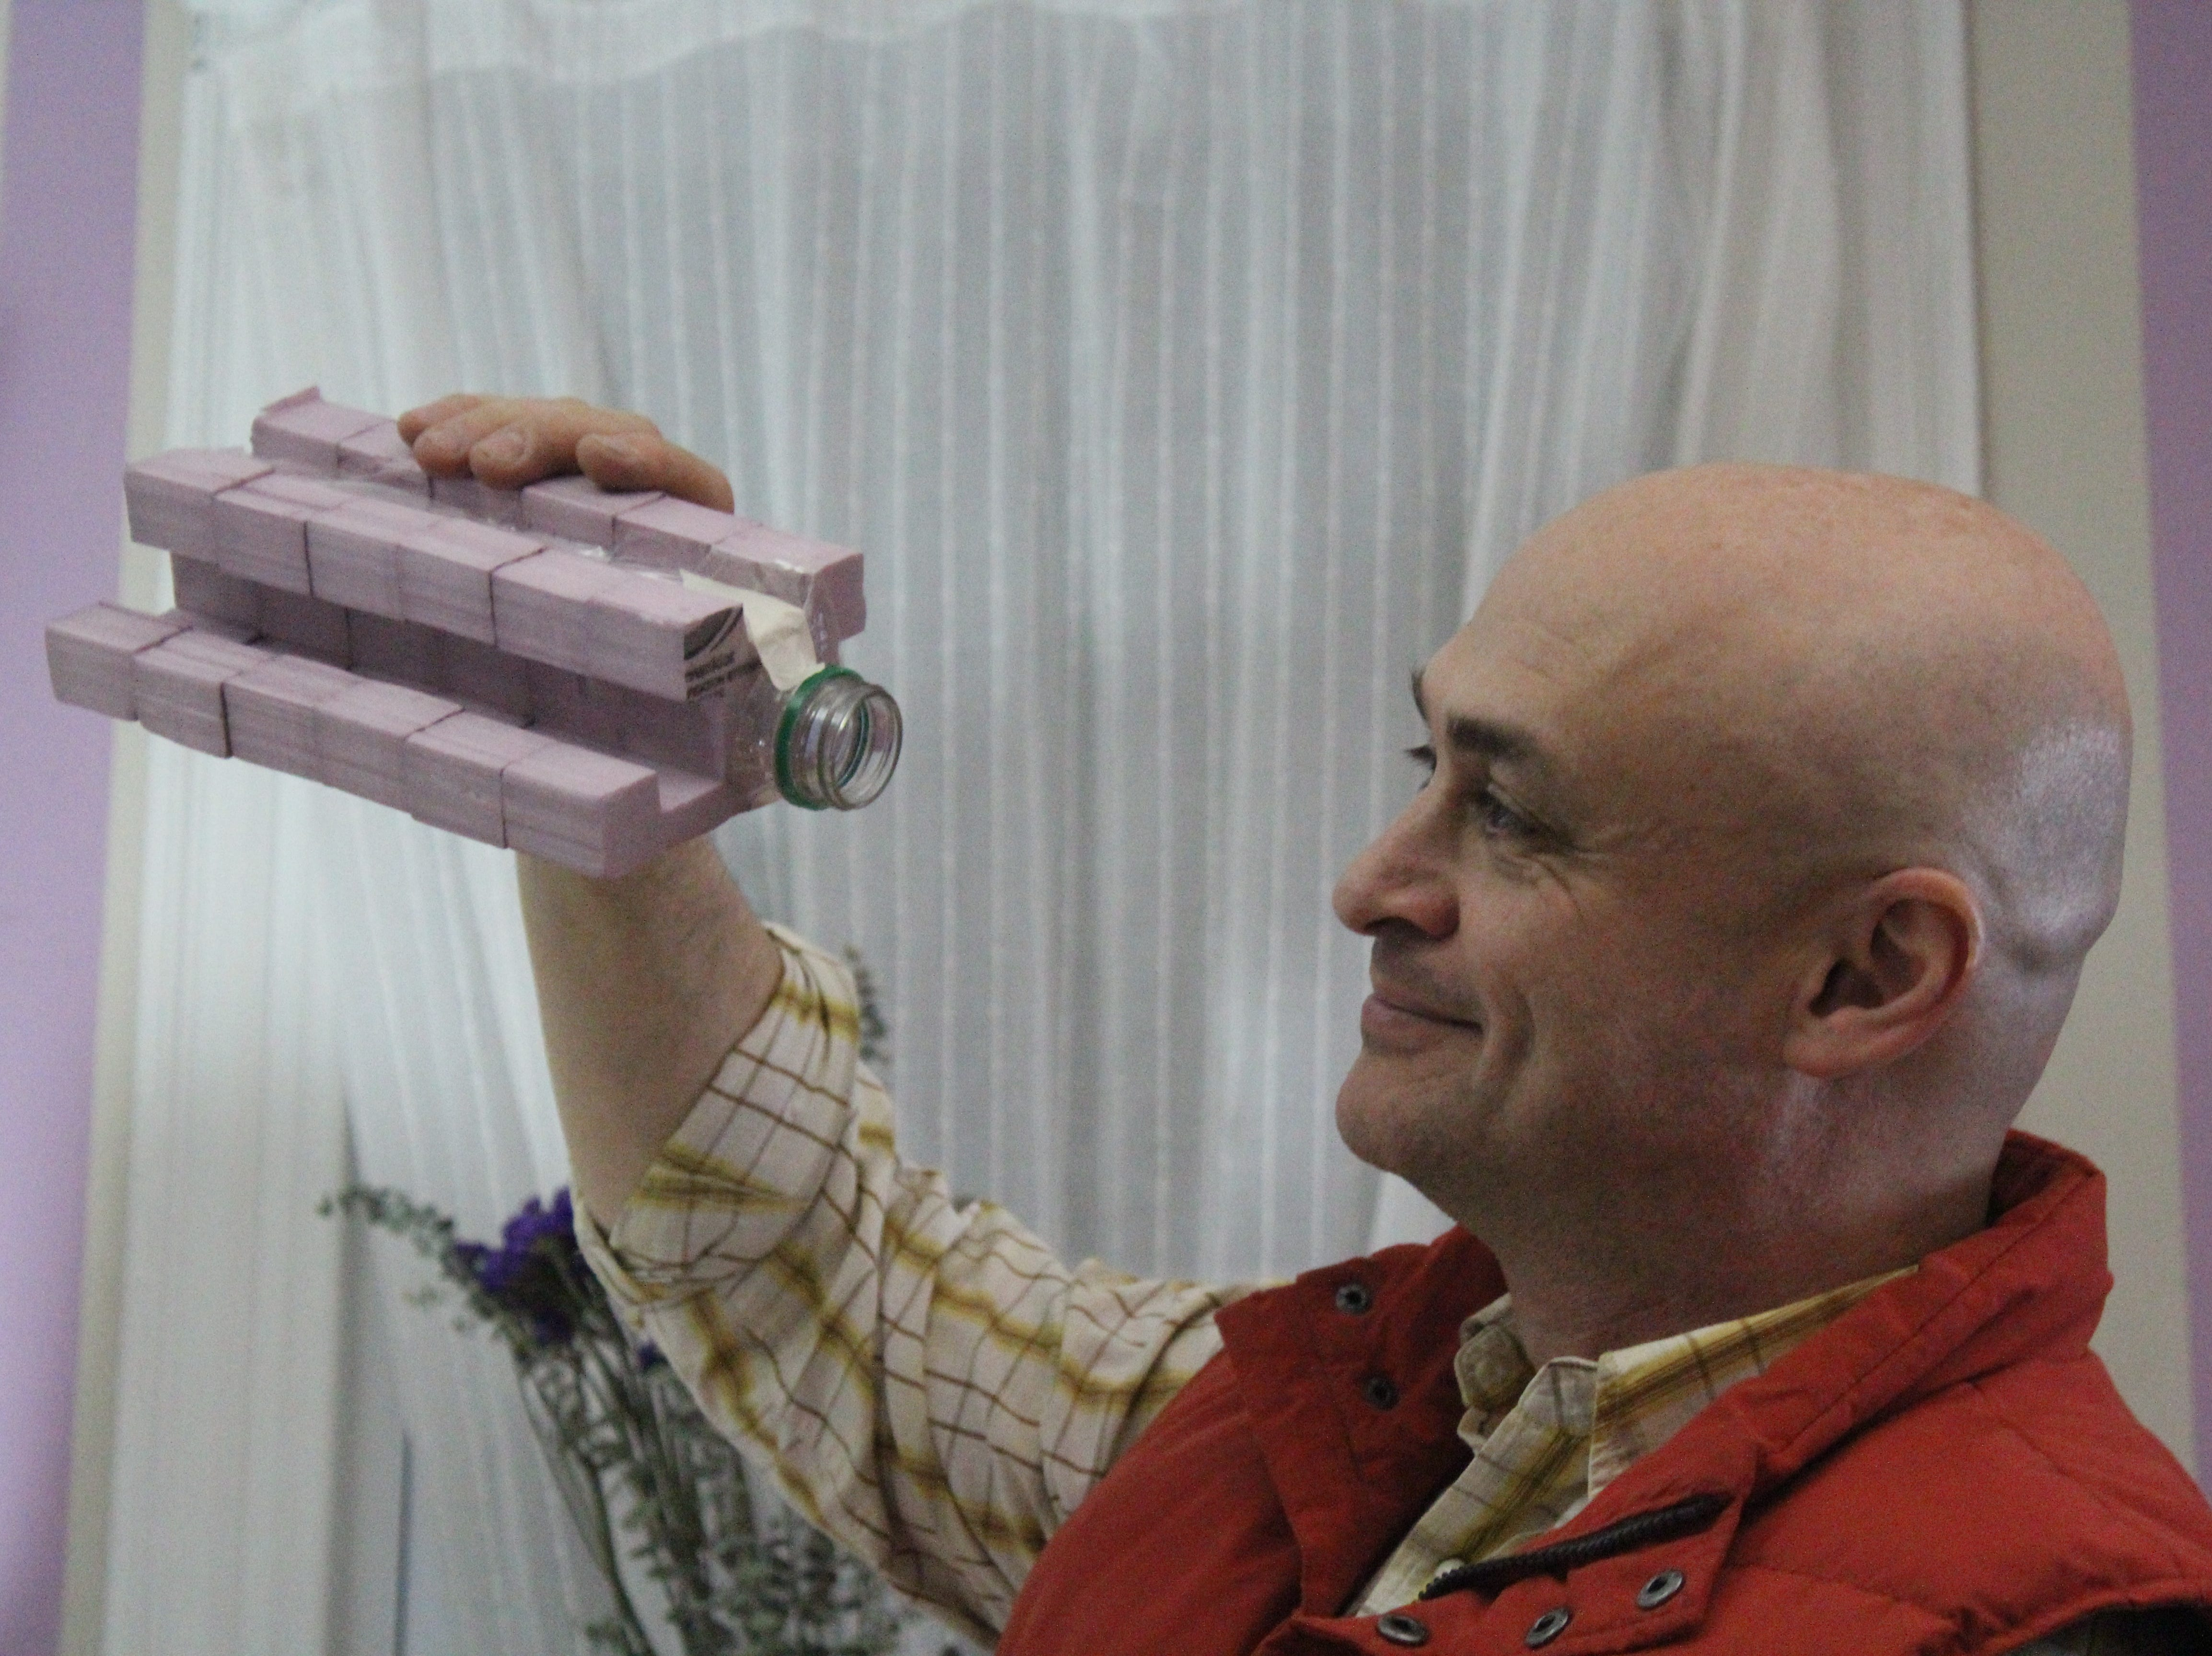 """Hoping to dohis part to save the world ecologically, East Brunswick's Vitaly Brukhman designed a bottle with a sustainabledesign.Called theBruvad Bottle, the projectis currently in the running in ExpoWanted, said to be the """"biggest product design competition"""" launched through Instagram. It will give 10 designers from around the world the opportunity to exhibit at Milan Design Week 2019, which is April 9-14."""